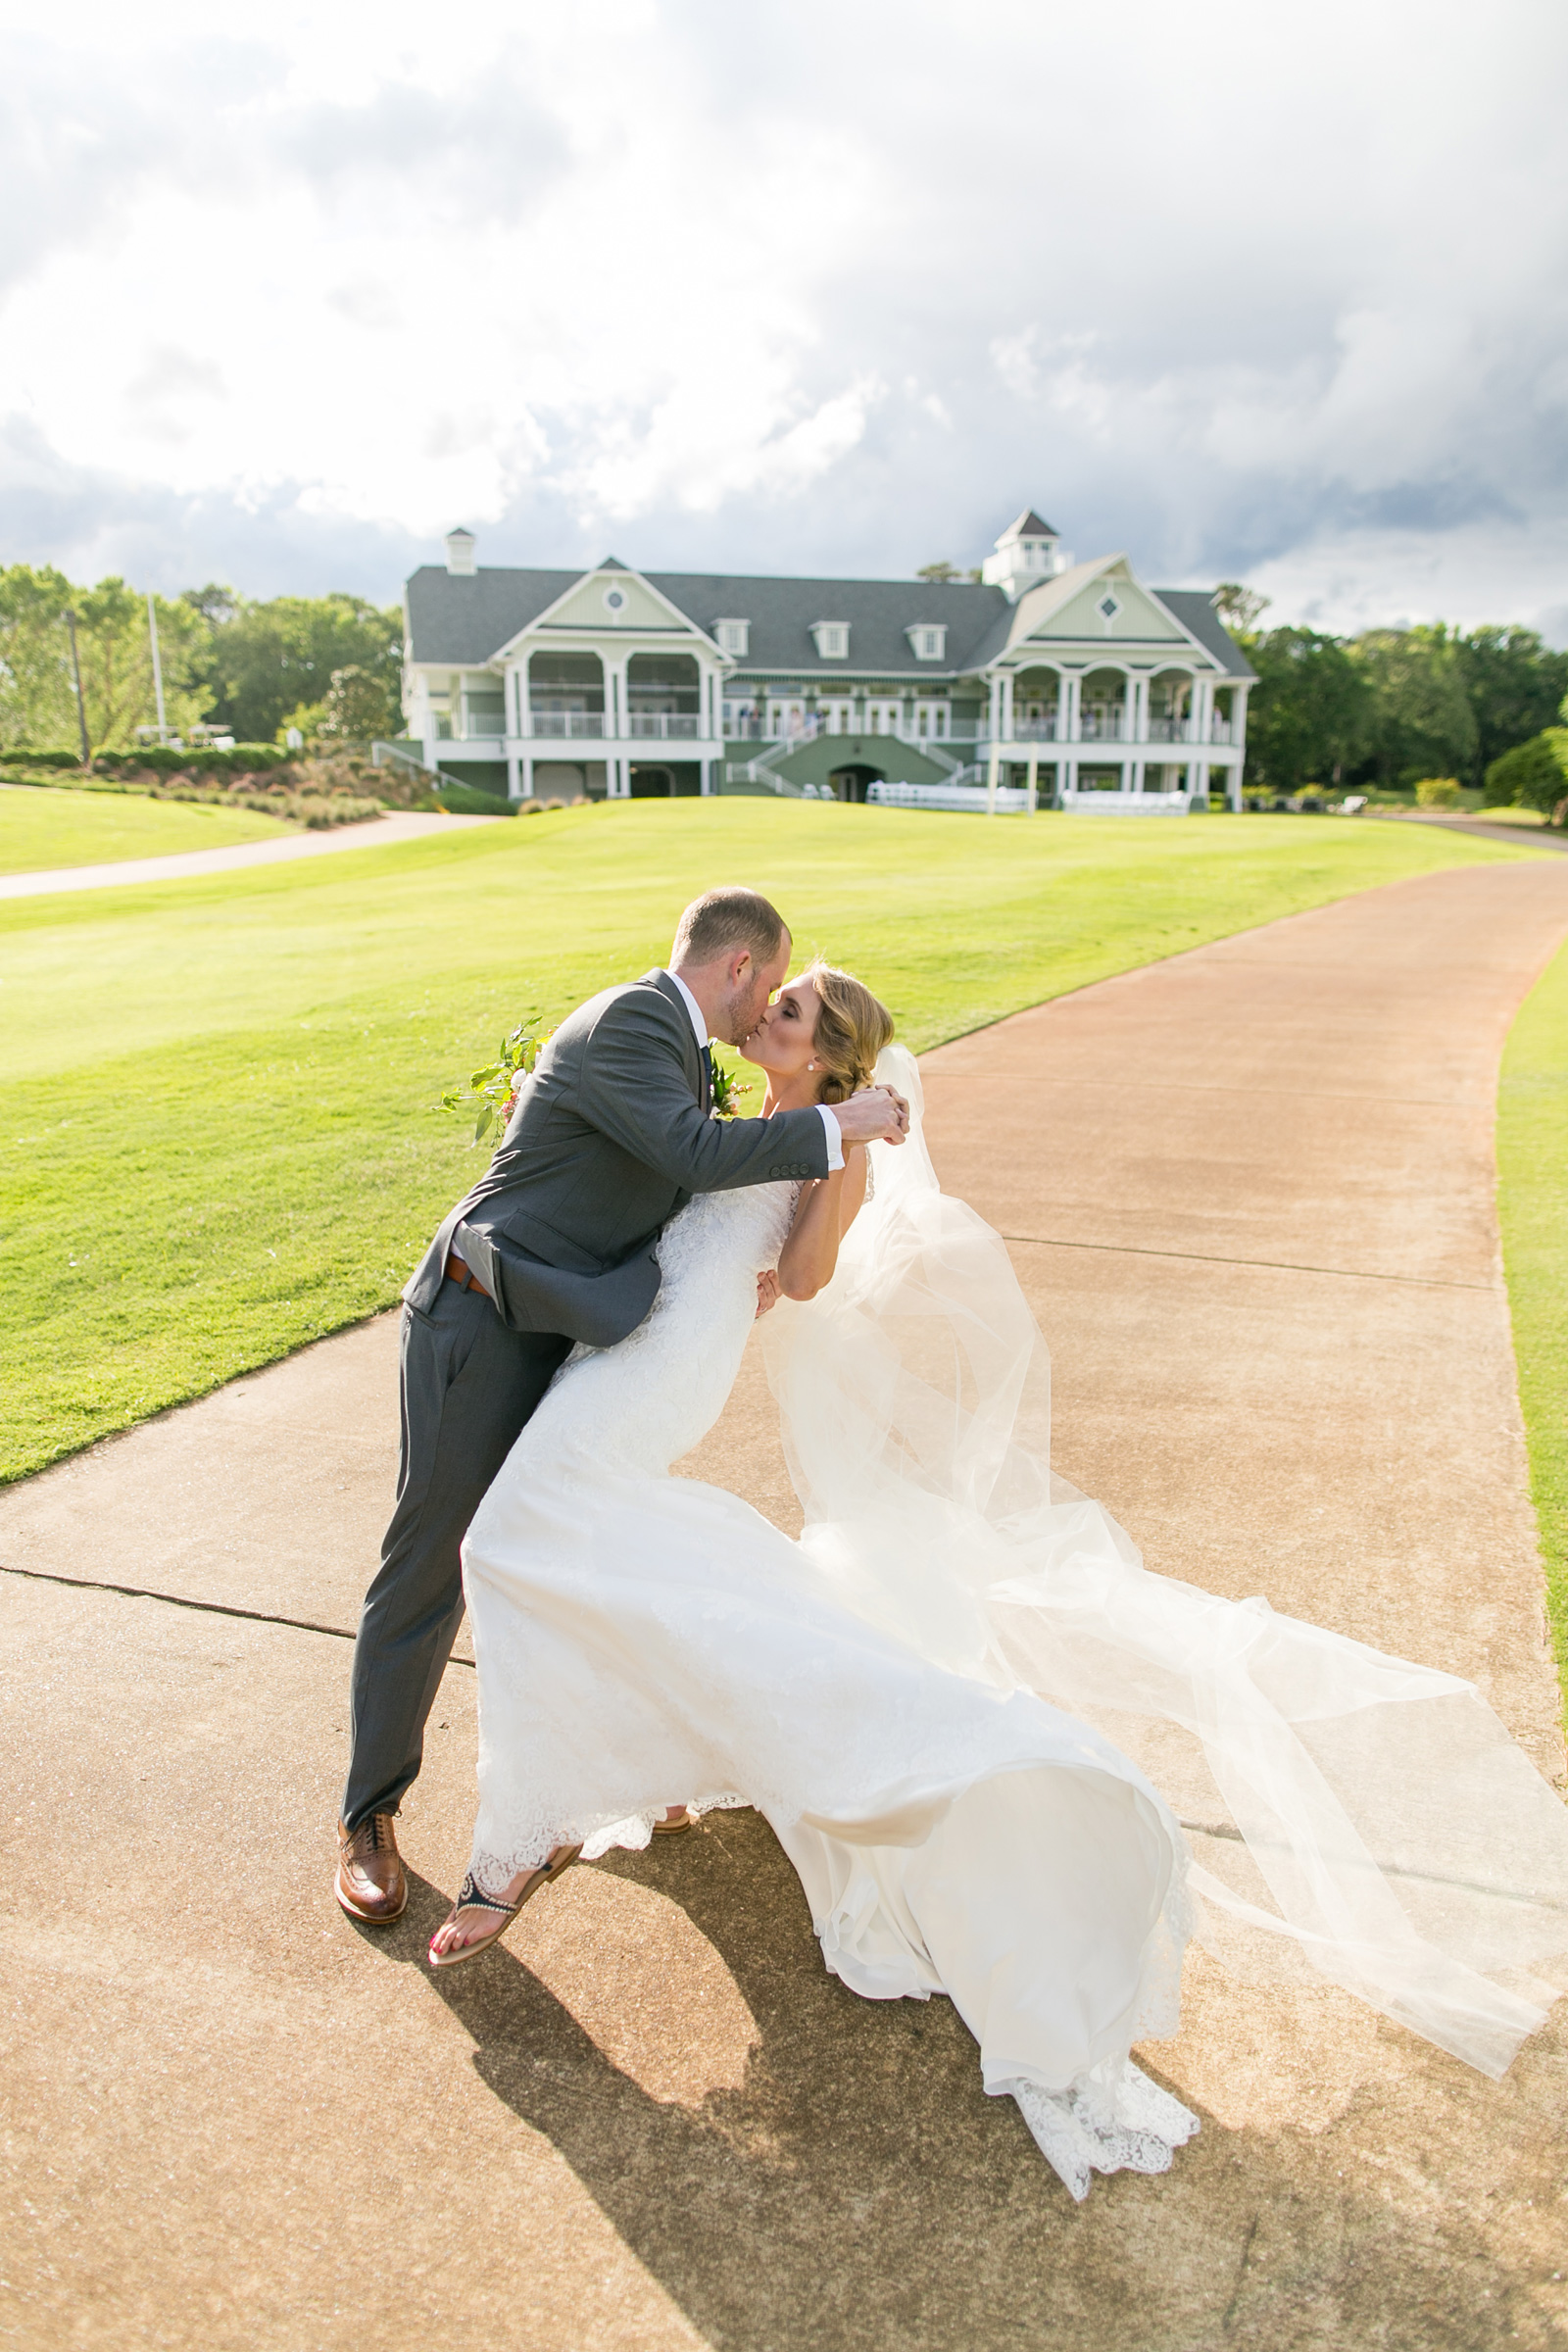 Sarah + Cameron; Duck Woods Country Club Wedding